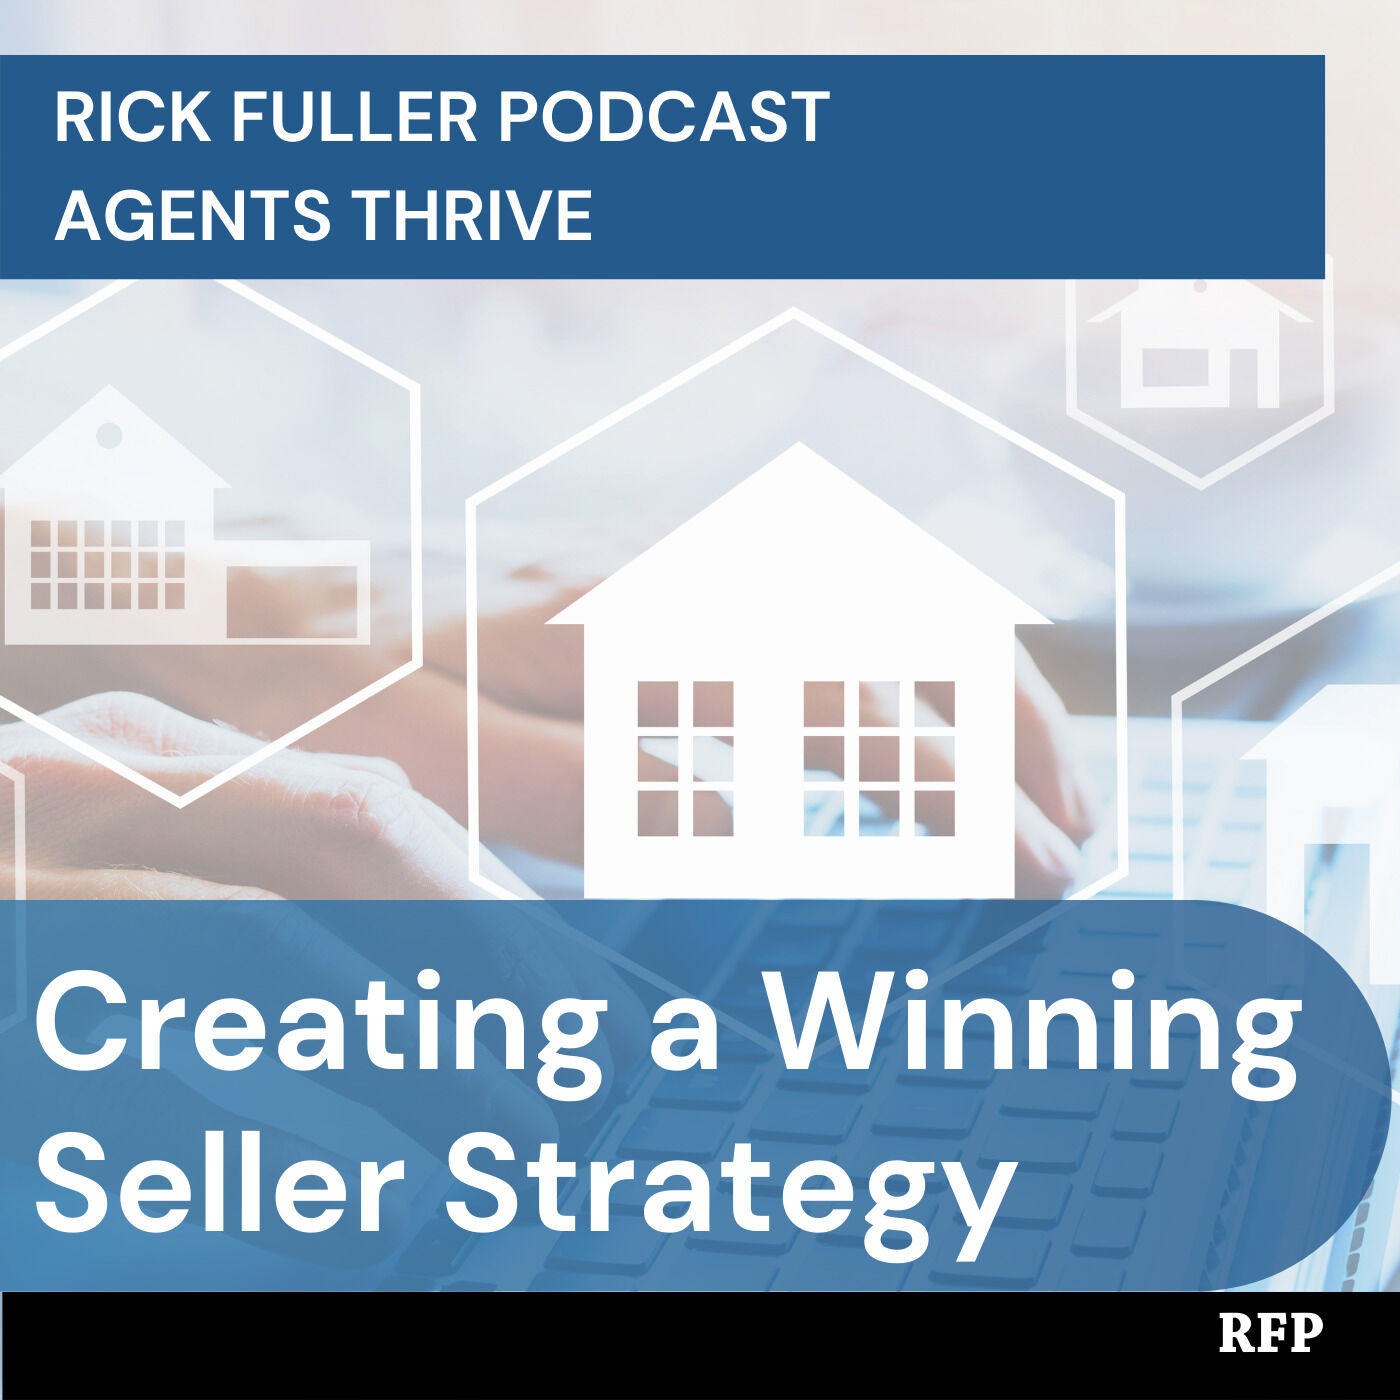 Creating a Winning Seller Strategy